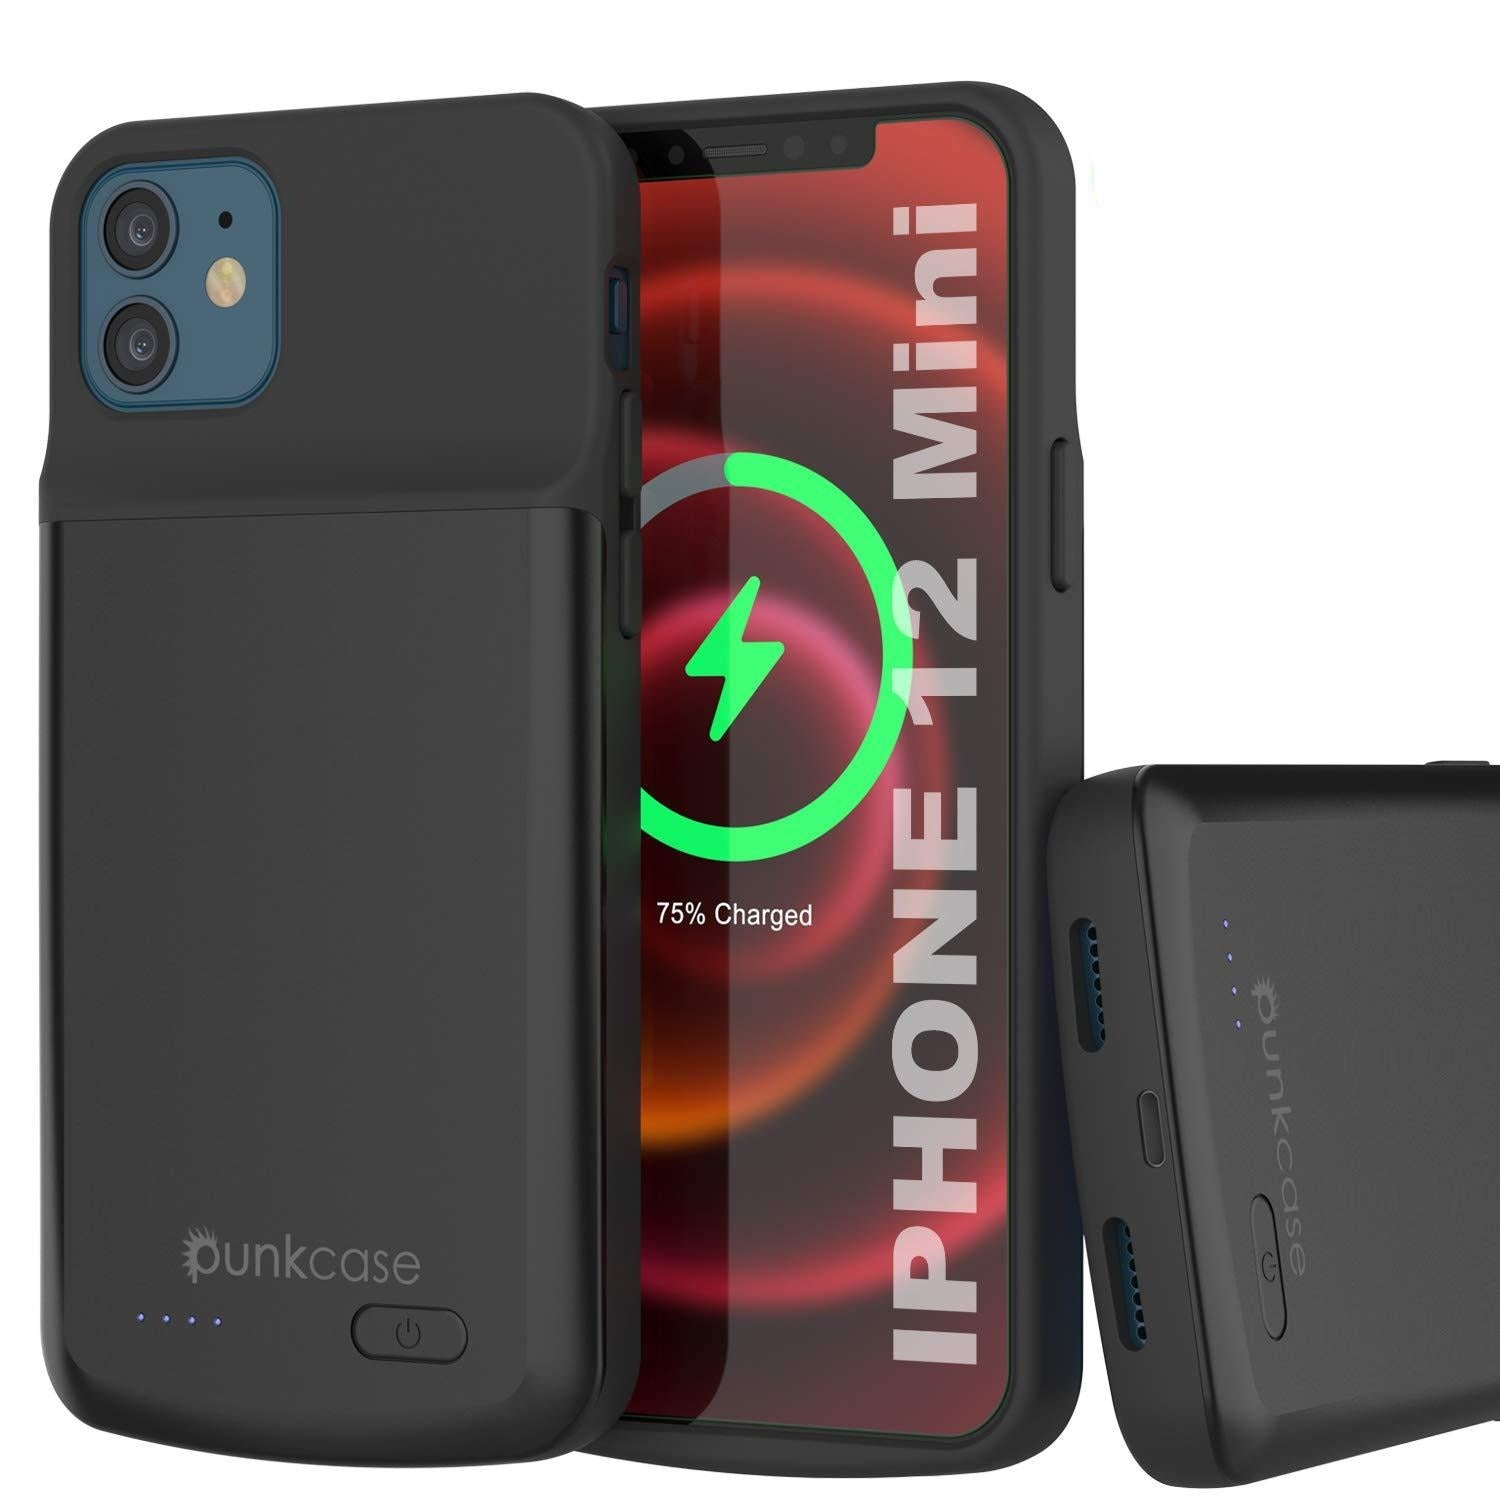 iPhone 12 Mini Battery Case, PunkJuice 4700mAH Fast Charging Power Bank W/ Screen Protector | [Black]